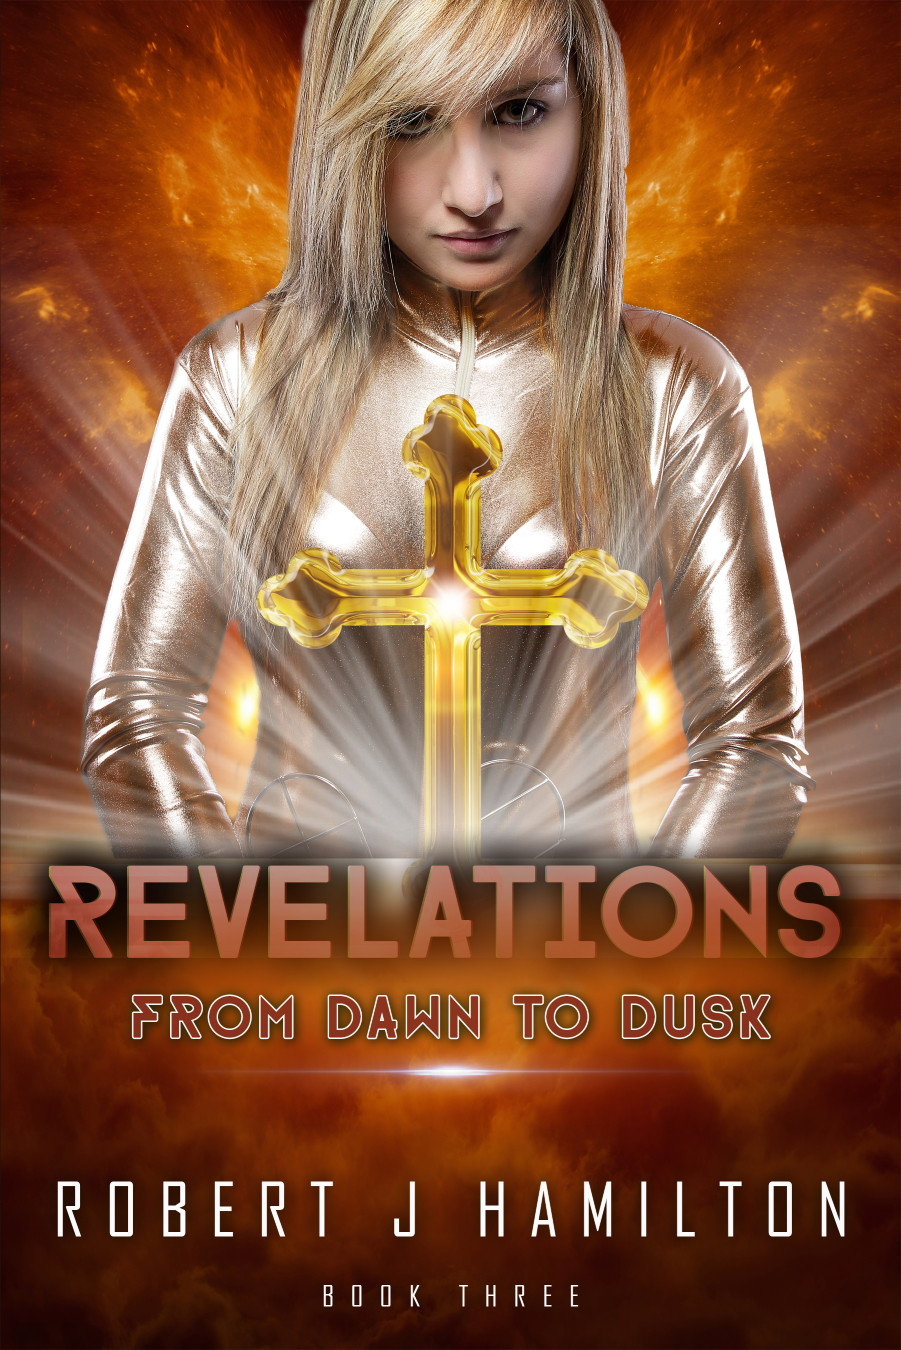 Revelations - From Dawn to Dusk cover